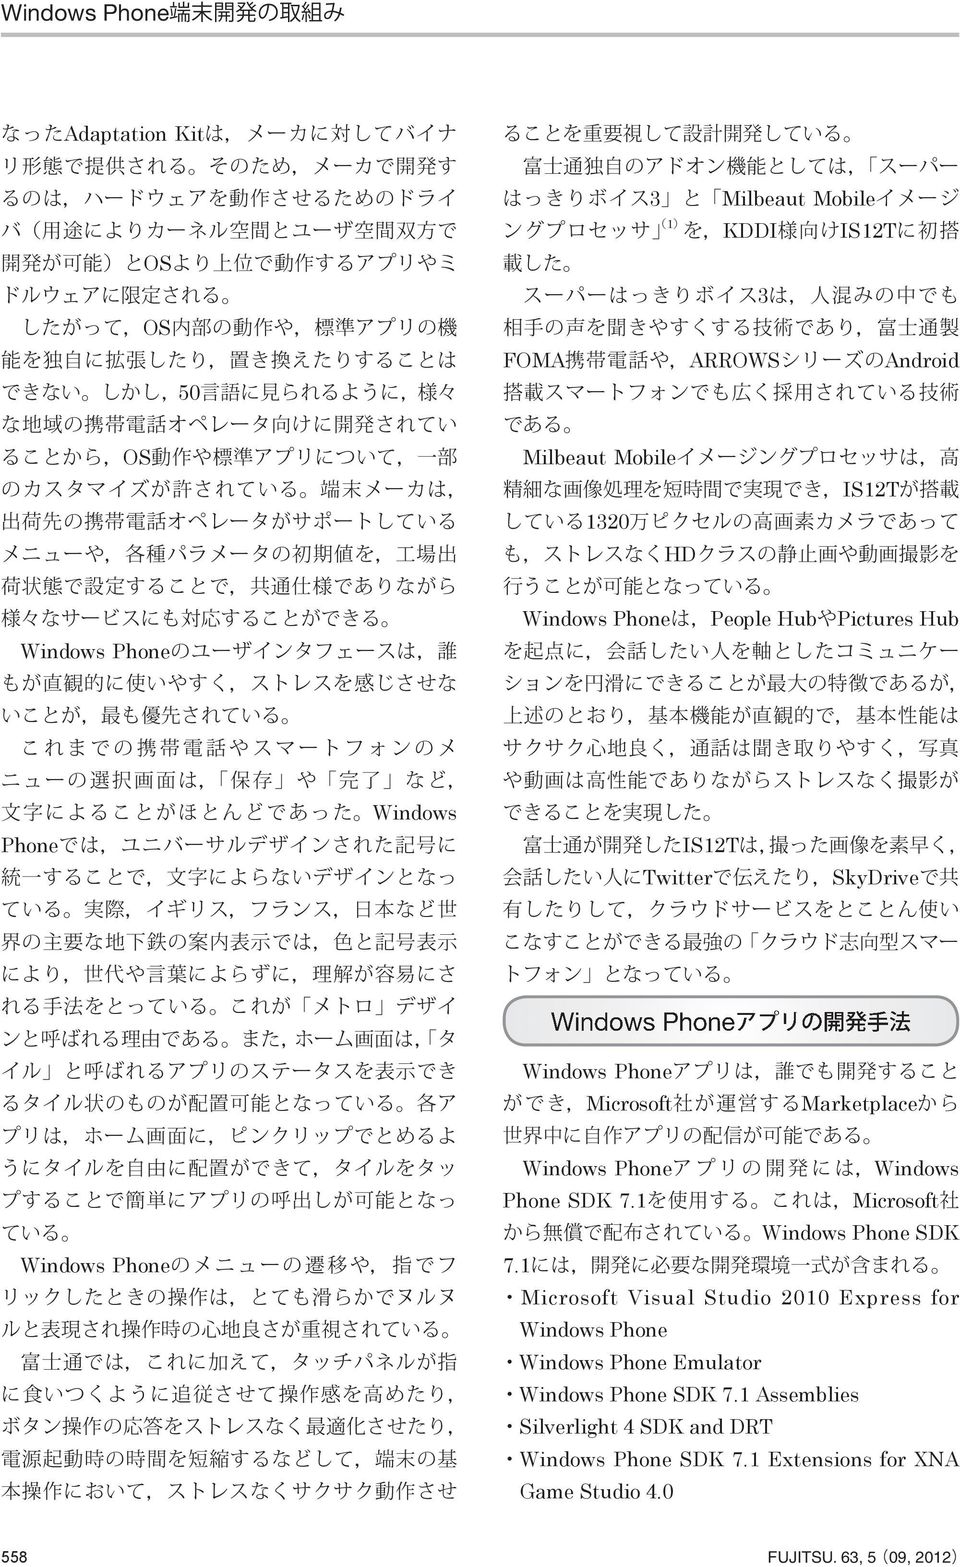 Phone SDK 7.1 Microsoft Windows Phone SDK 7.